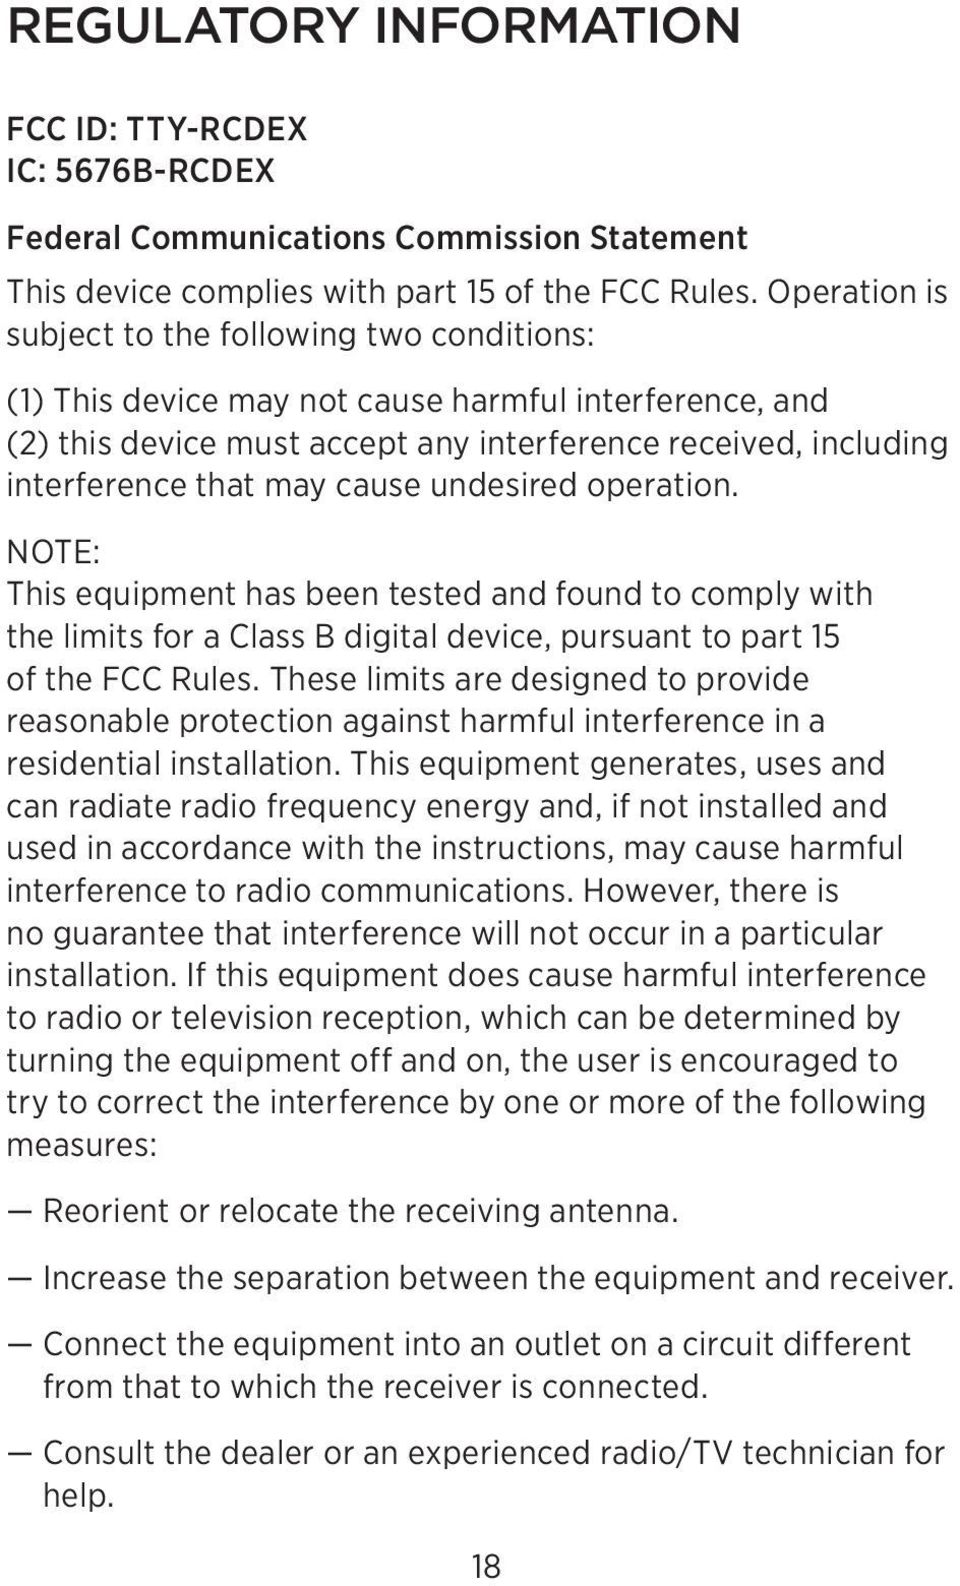 cause undesired operation. NOTE: This equipment has been tested and found to comply with the limits for a Class B digital device, pursuant to part 15 of the FCC Rules.